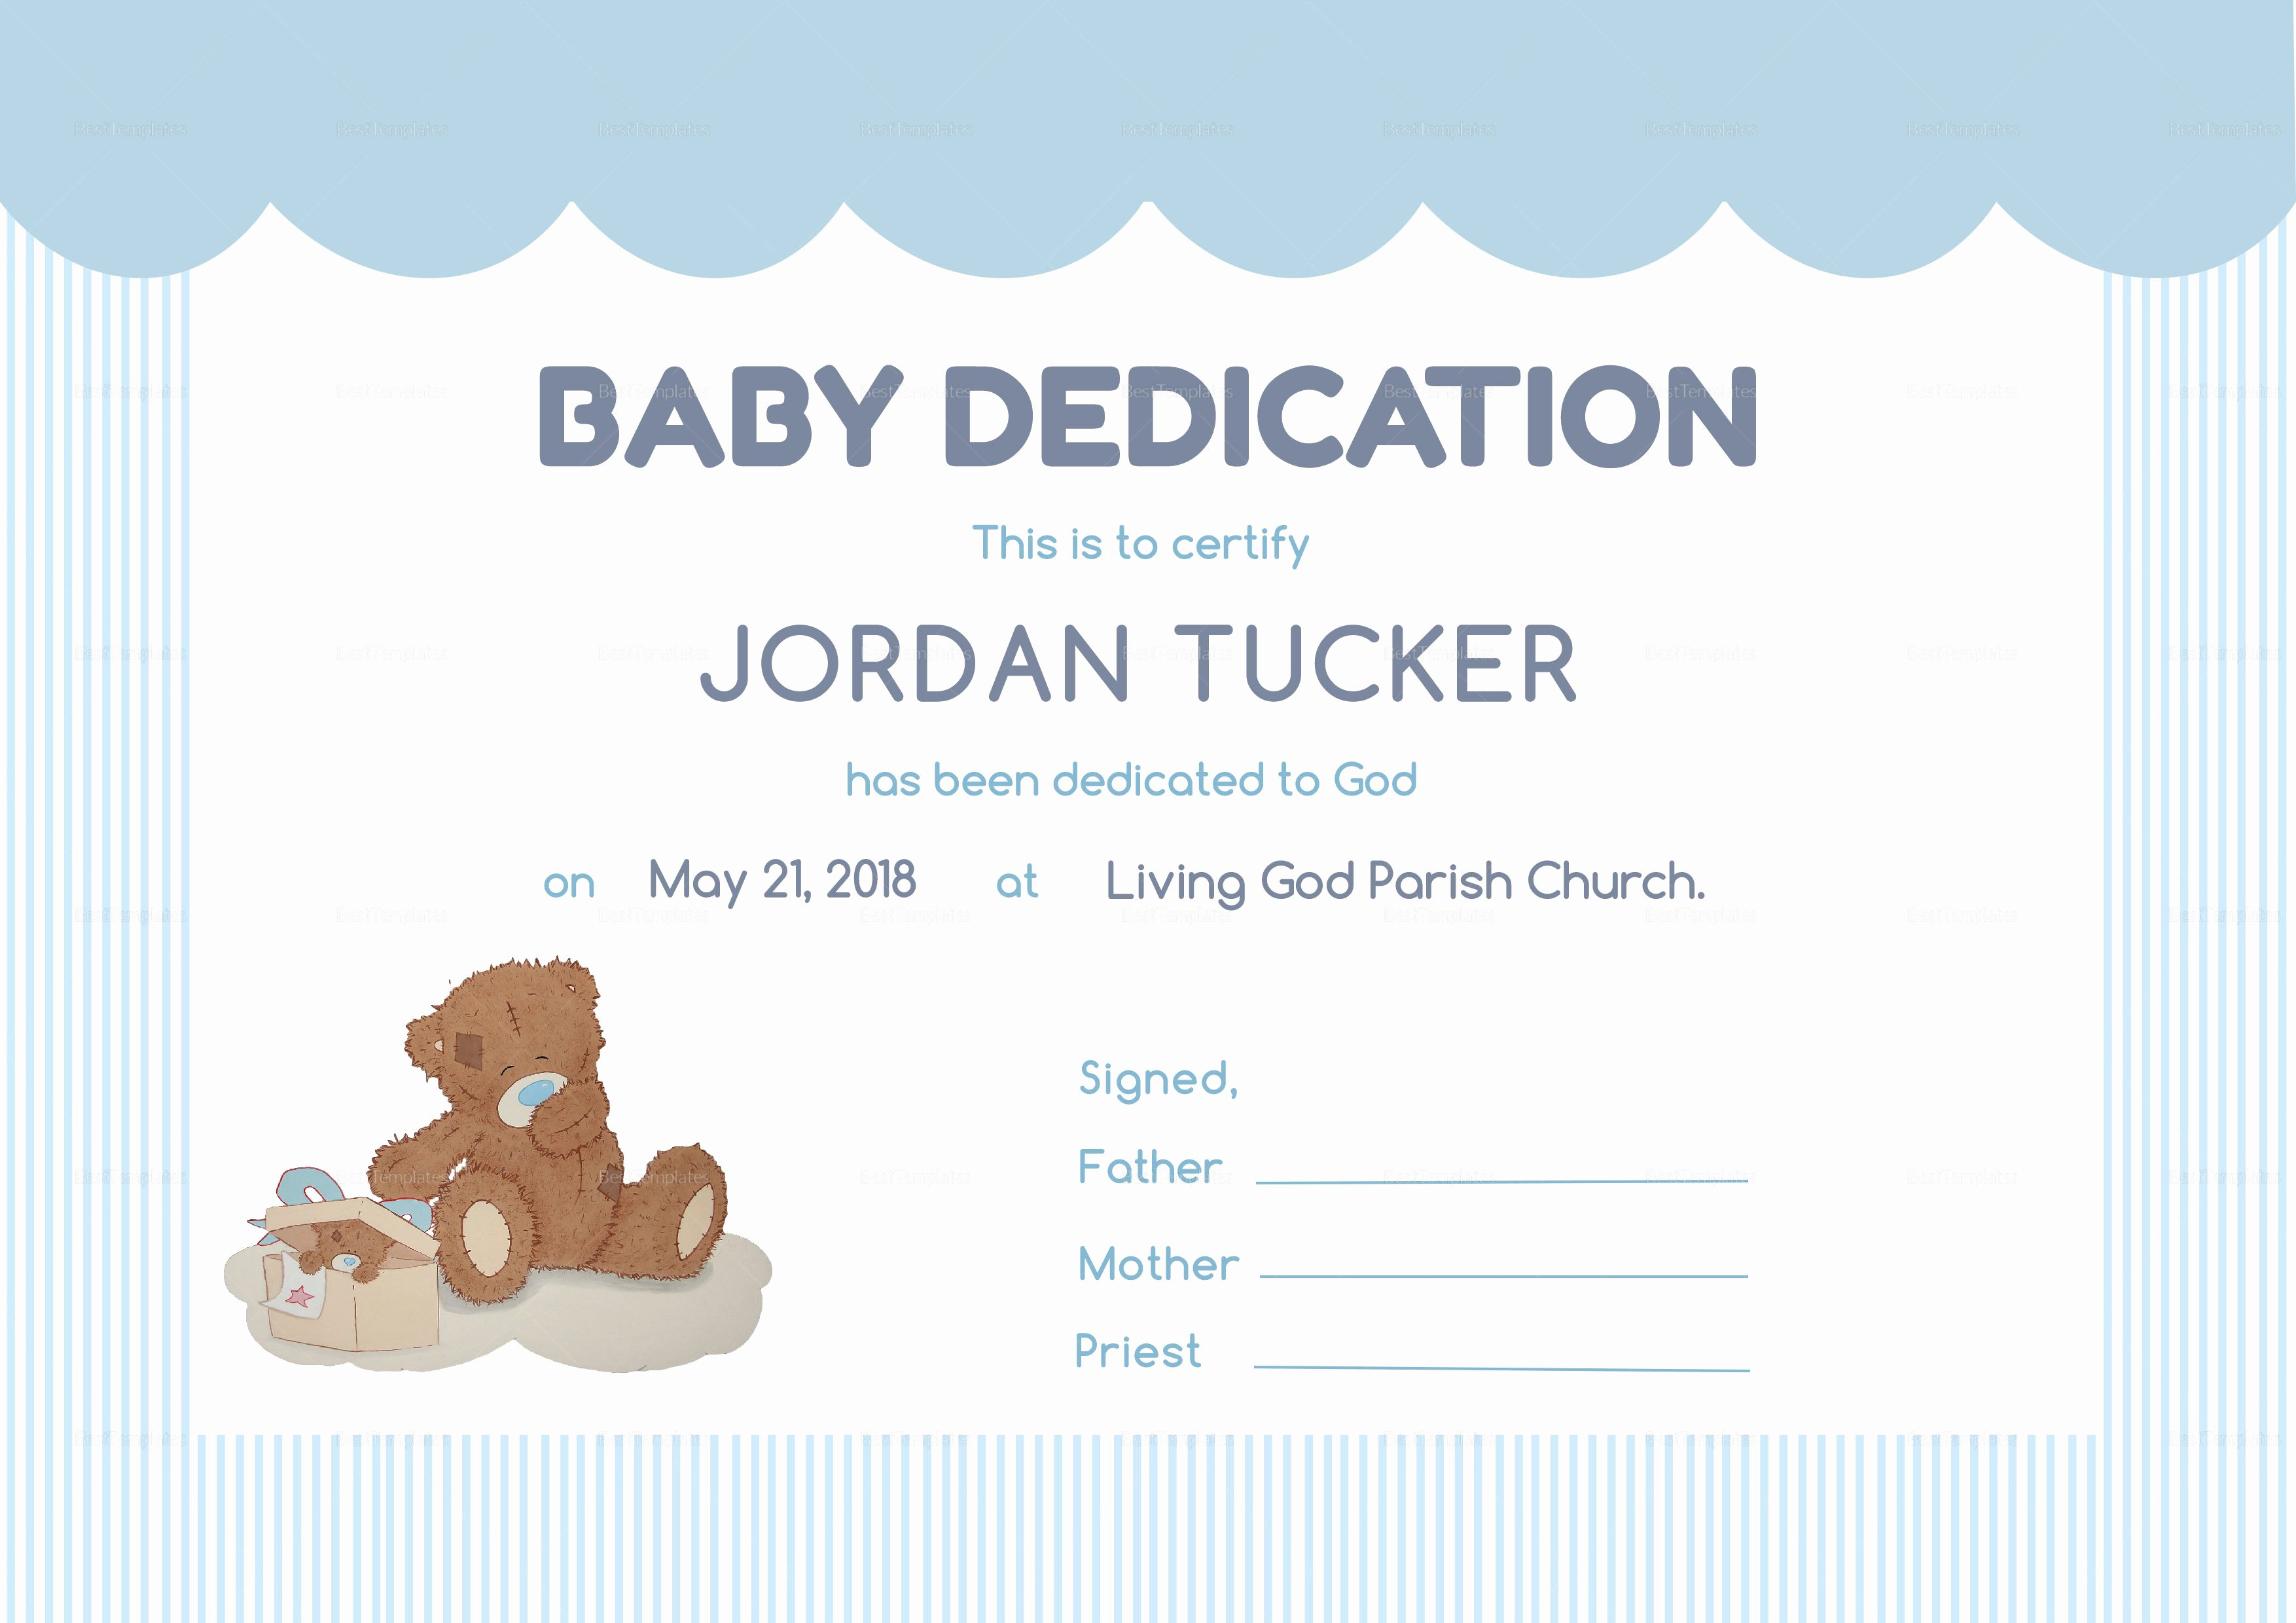 Baby Dedication Certificate Design Template In Psd Word